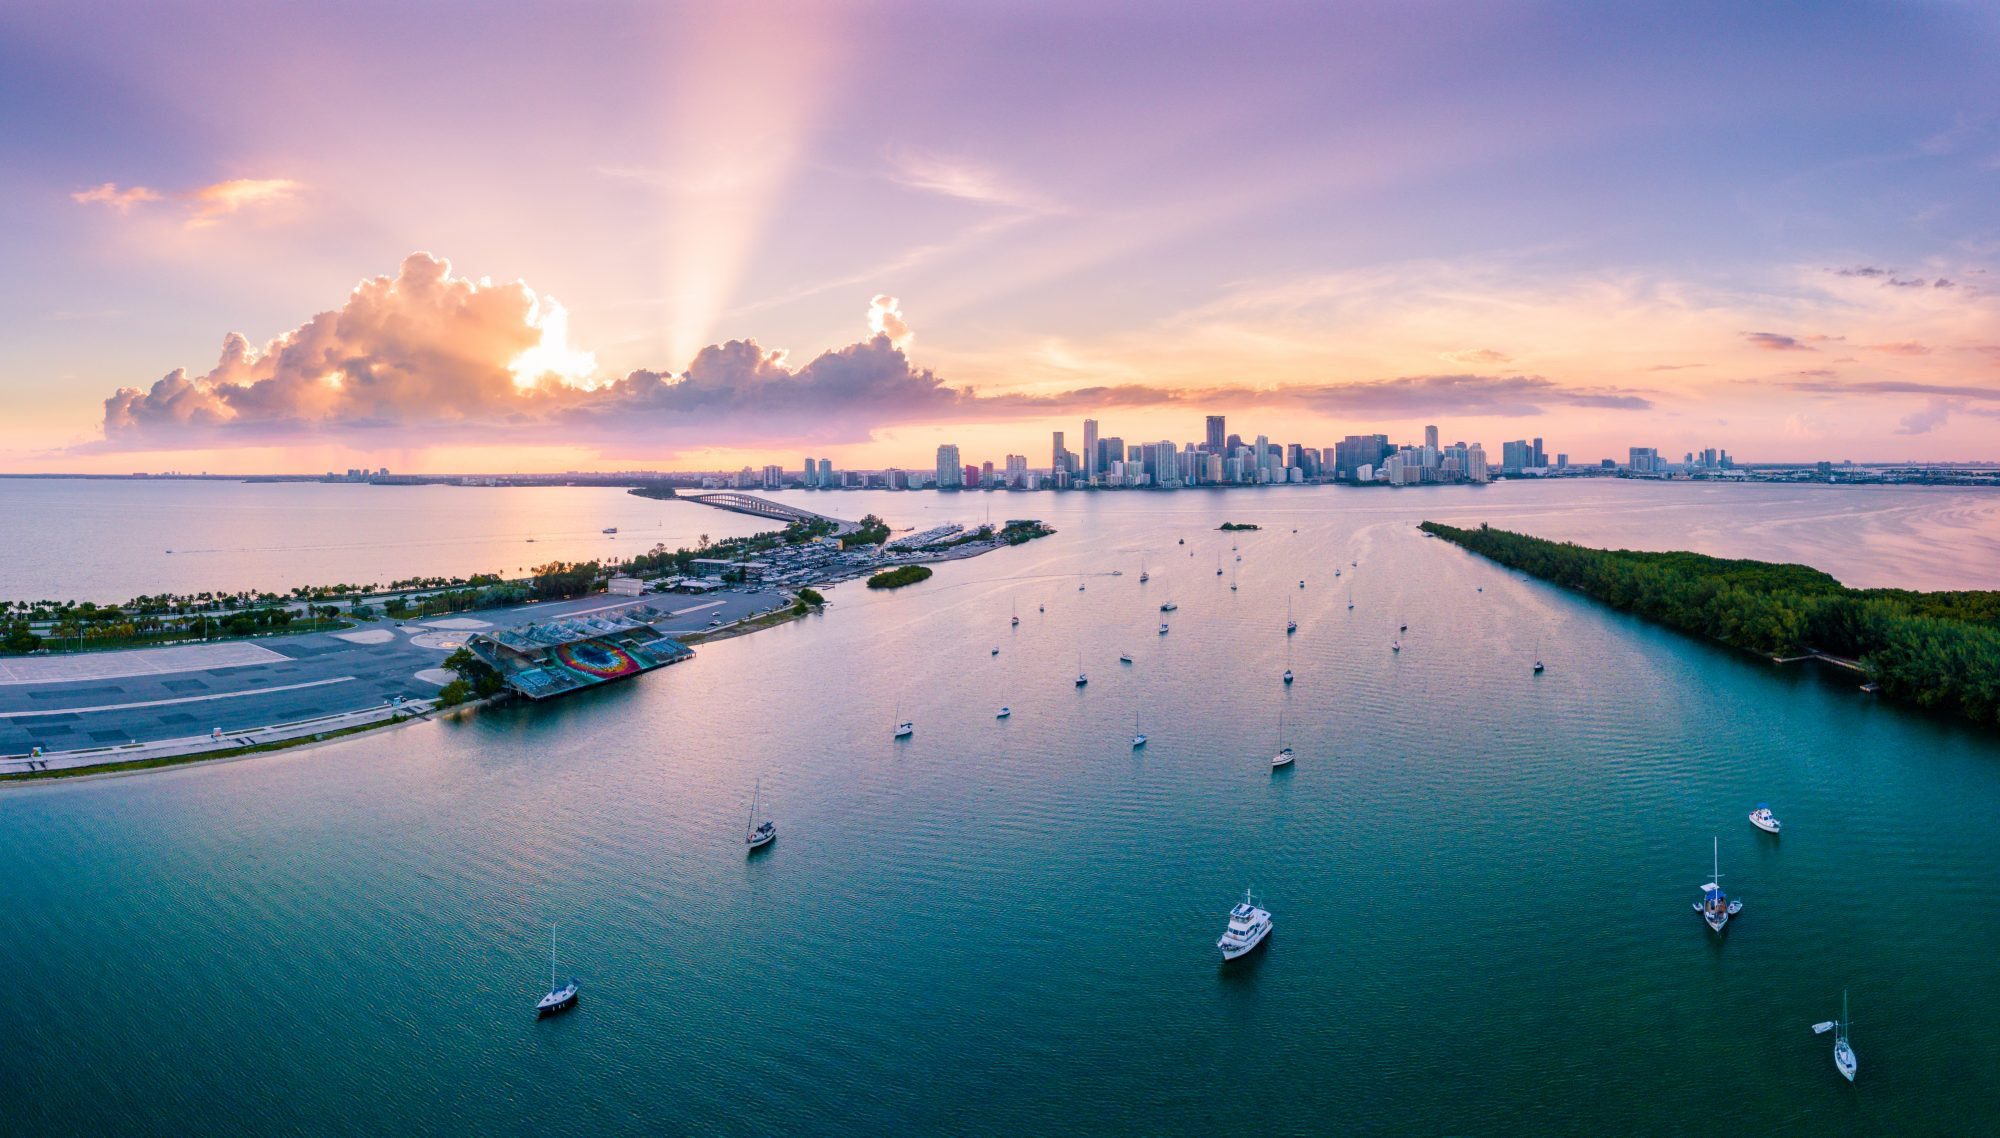 Miami Sunset and Skyline